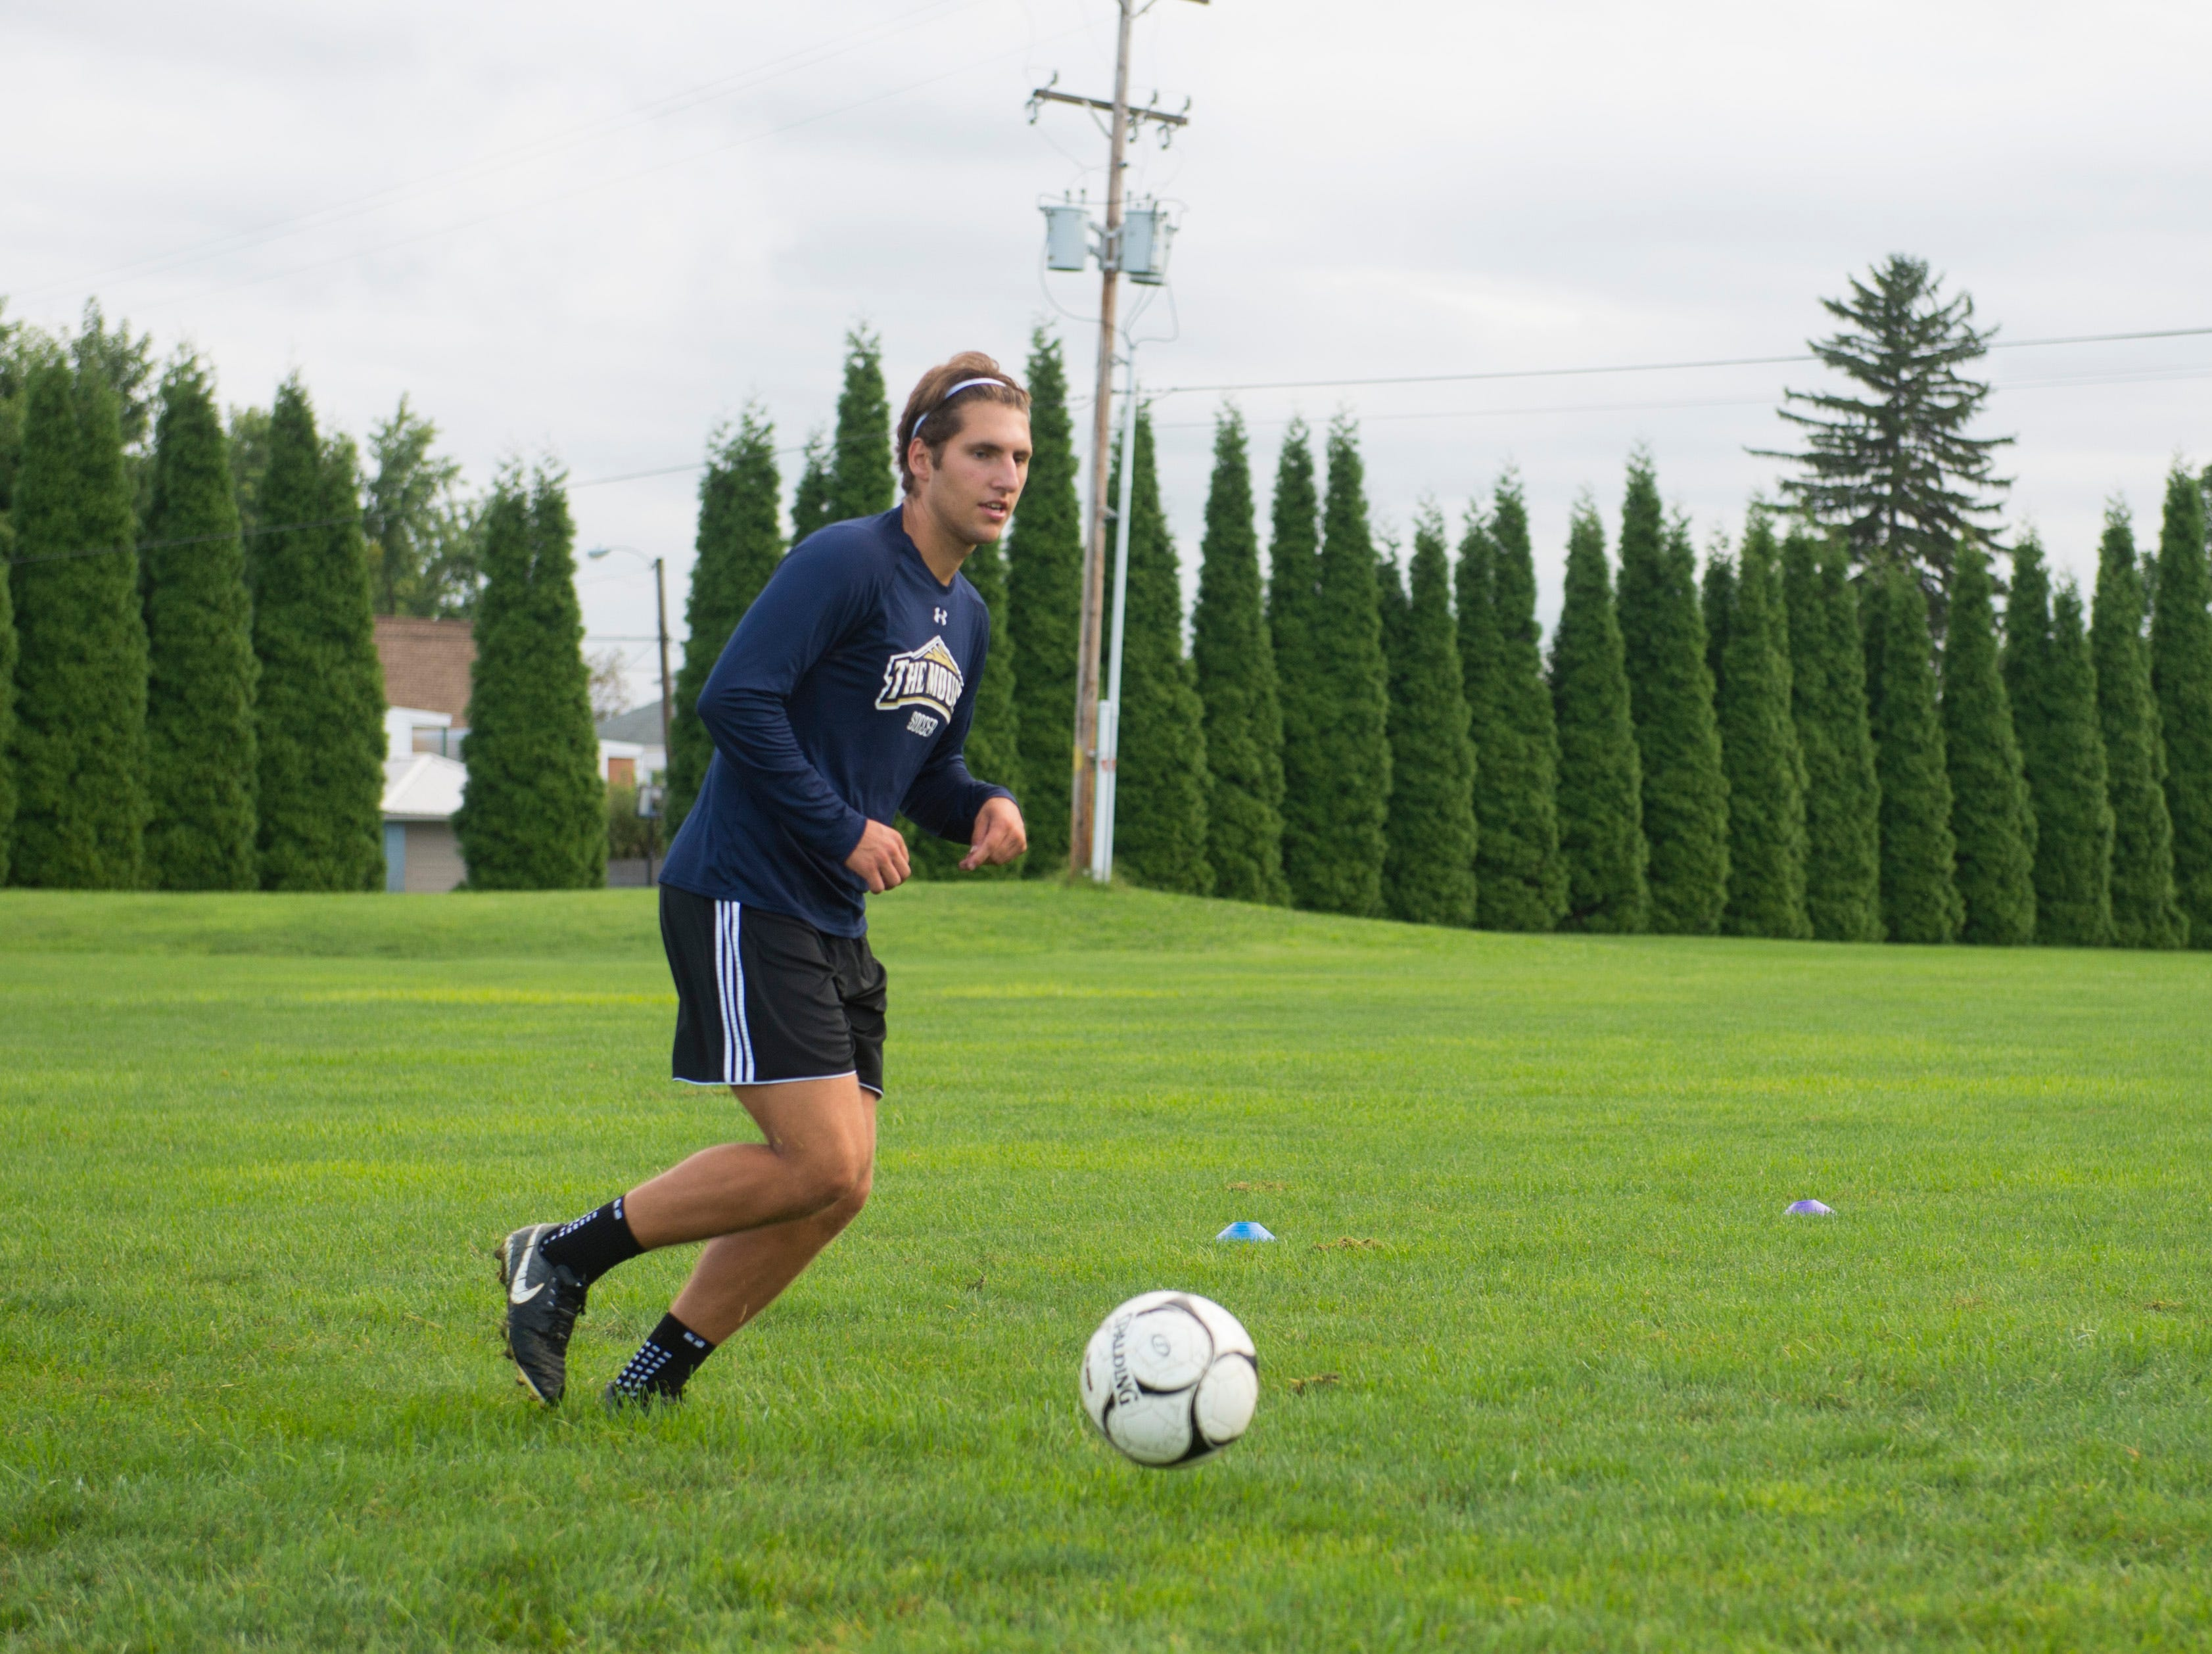 The York Catholic boys' soccer team runs through passing drills to start practice on August 13, 2018.